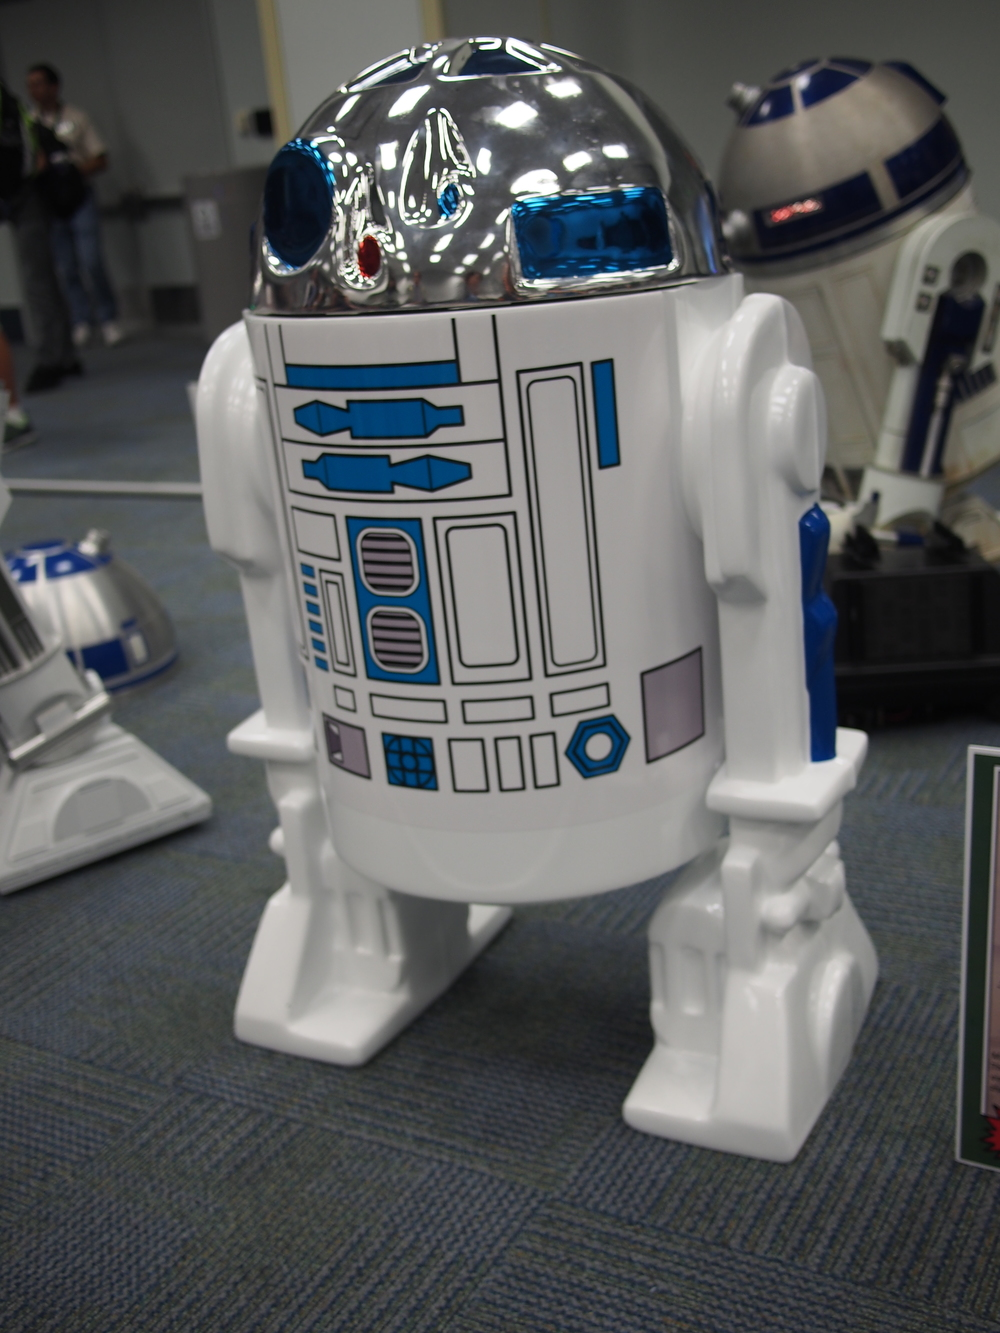 Full scale replica of Kenner R2D2 toy figure